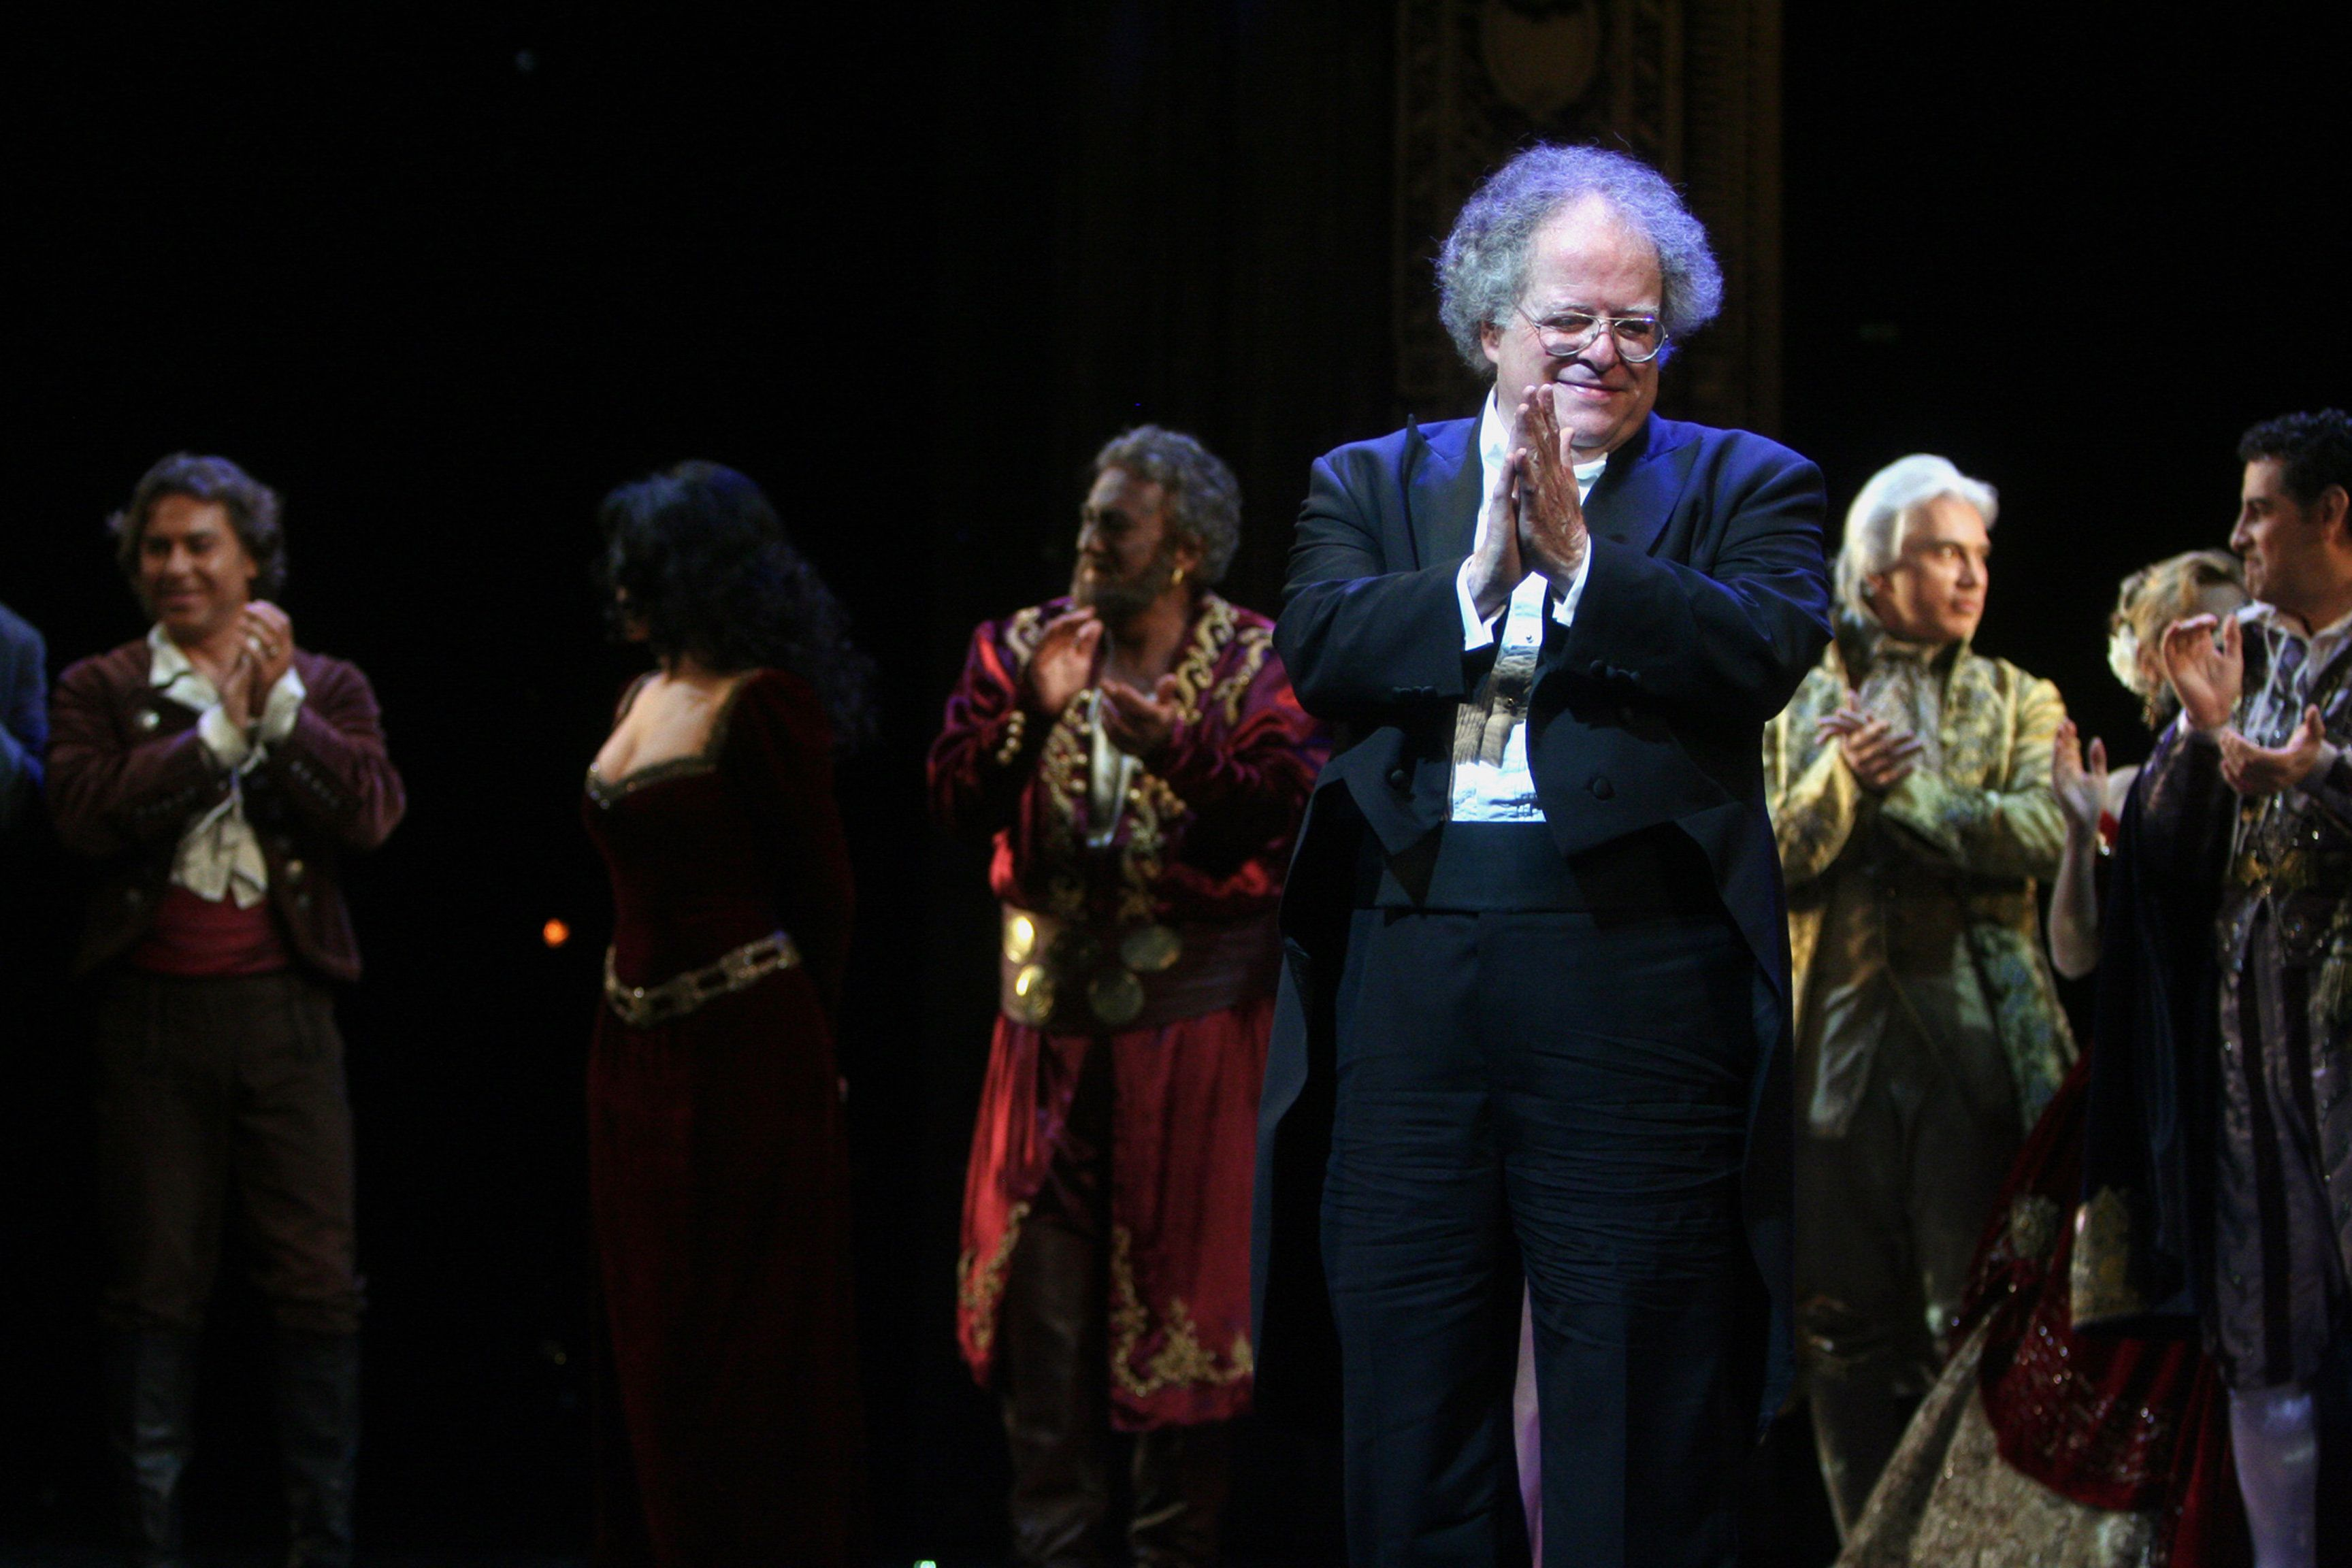 James Levine, seen here in 2009, served as a conductor with the Met for more than four decades.